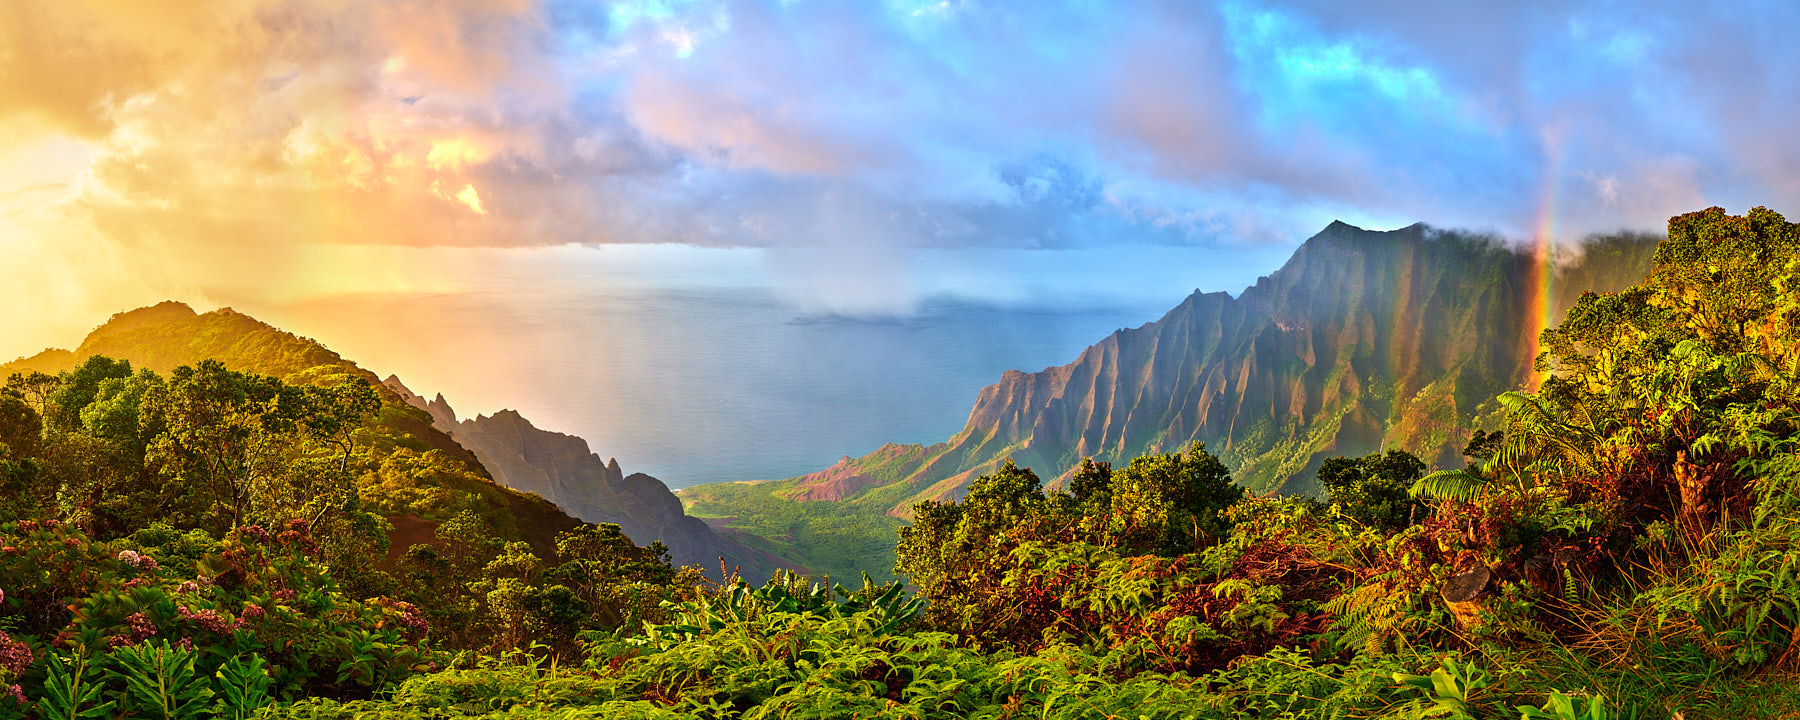 panoramic view of the Kalalau Valley on the island of Kauai with a rainbow and a dramatic sunset along the Na Pali Coast